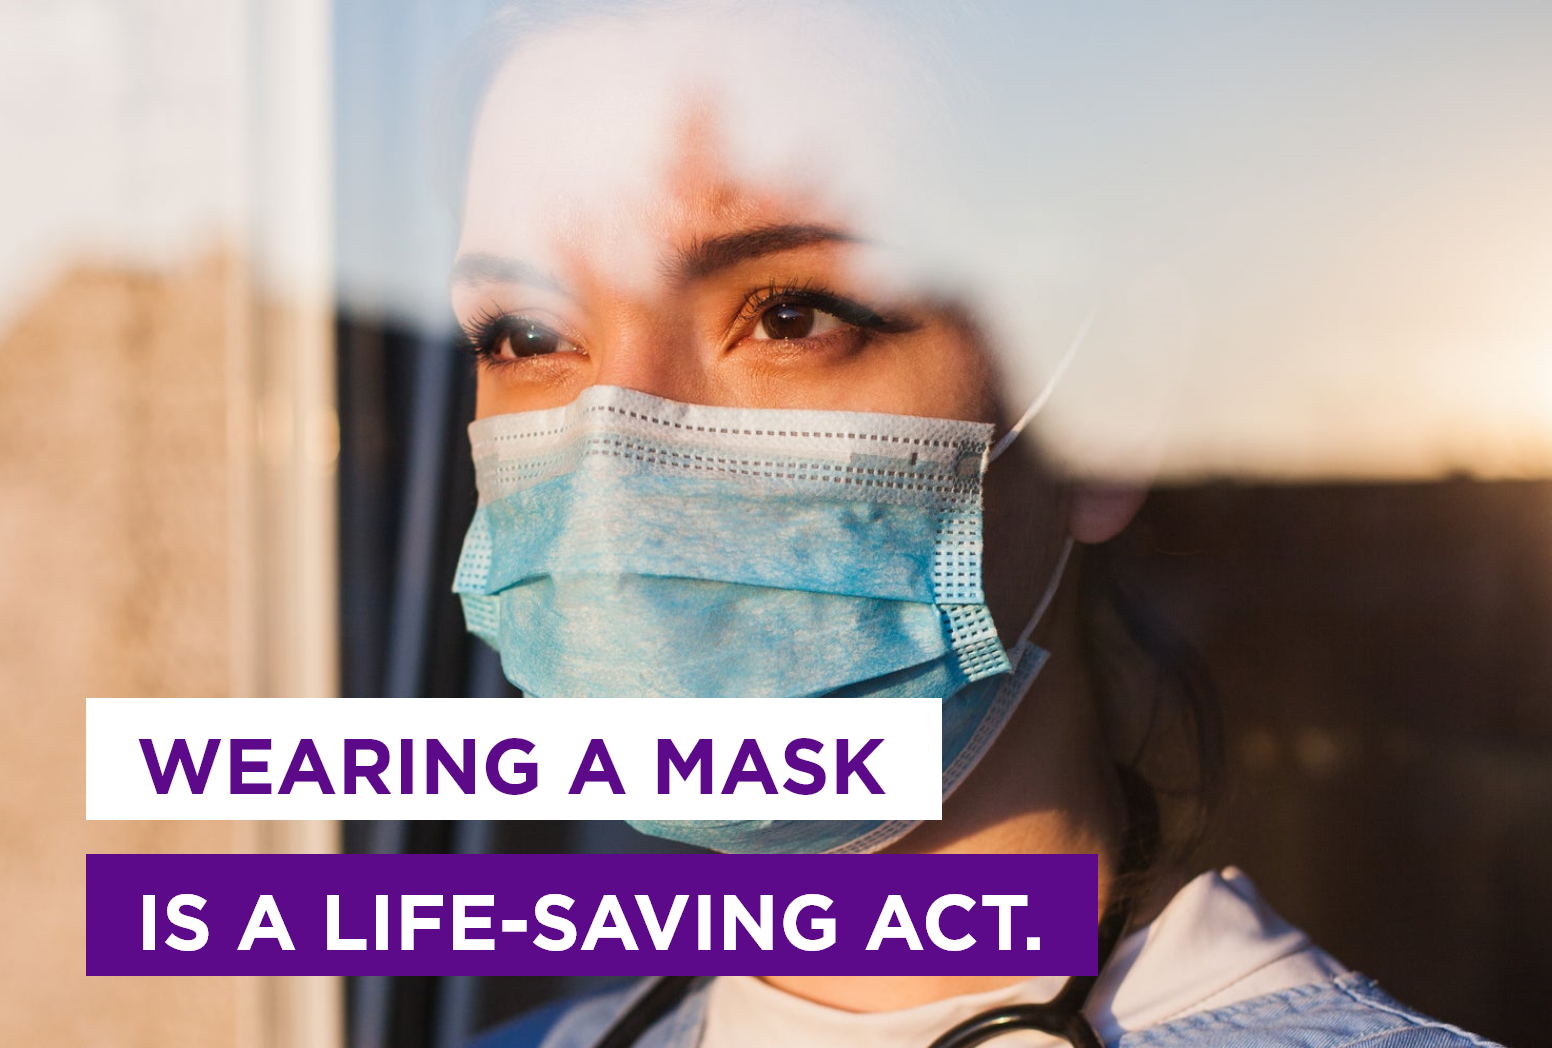 wearing a mask is a life saving act